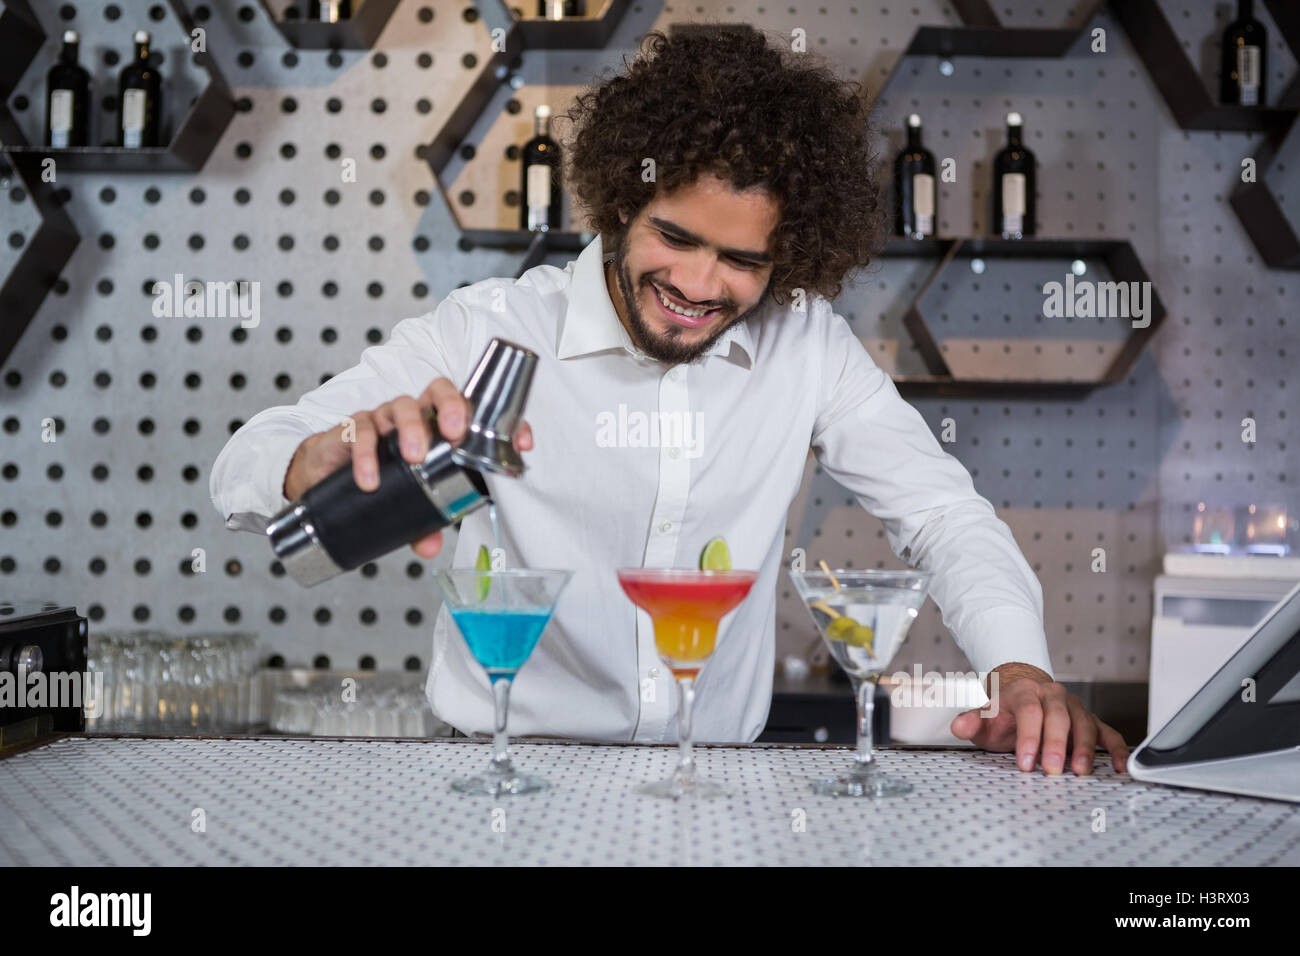 Bartender pouring cocktail into glasses - Stock Image